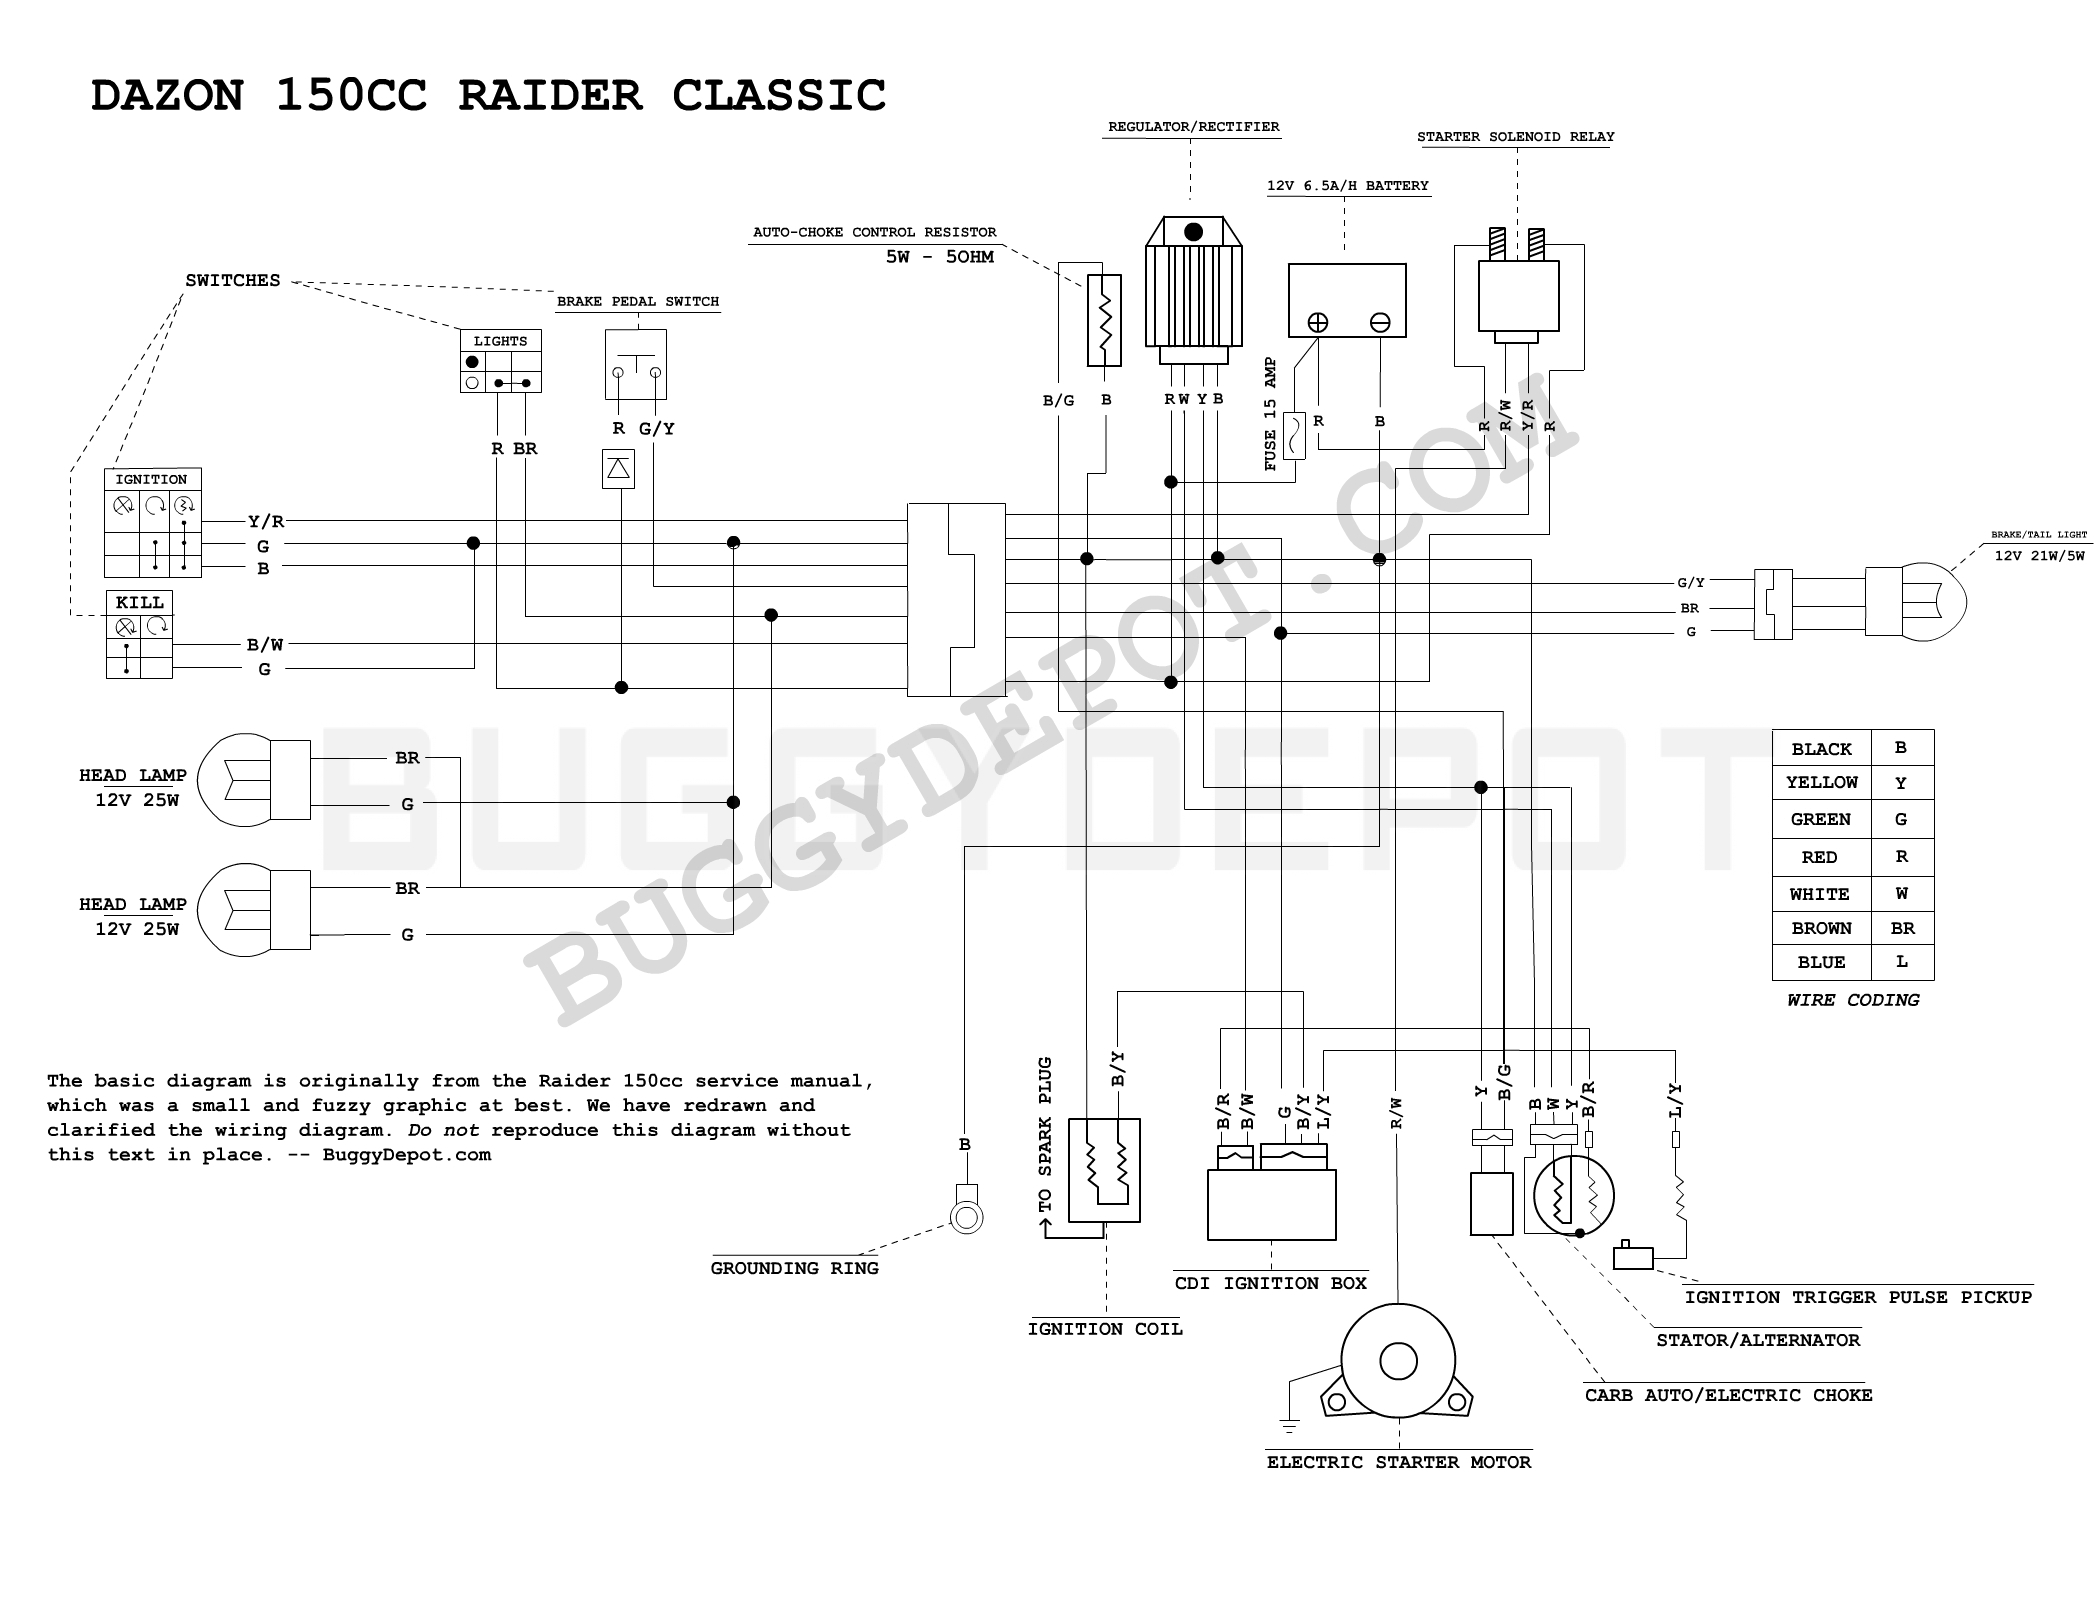 article_33_1278205207 gy6 150cc ignition troubleshooting guide no spark? buggy depot gy6 wiring diagram at mifinder.co